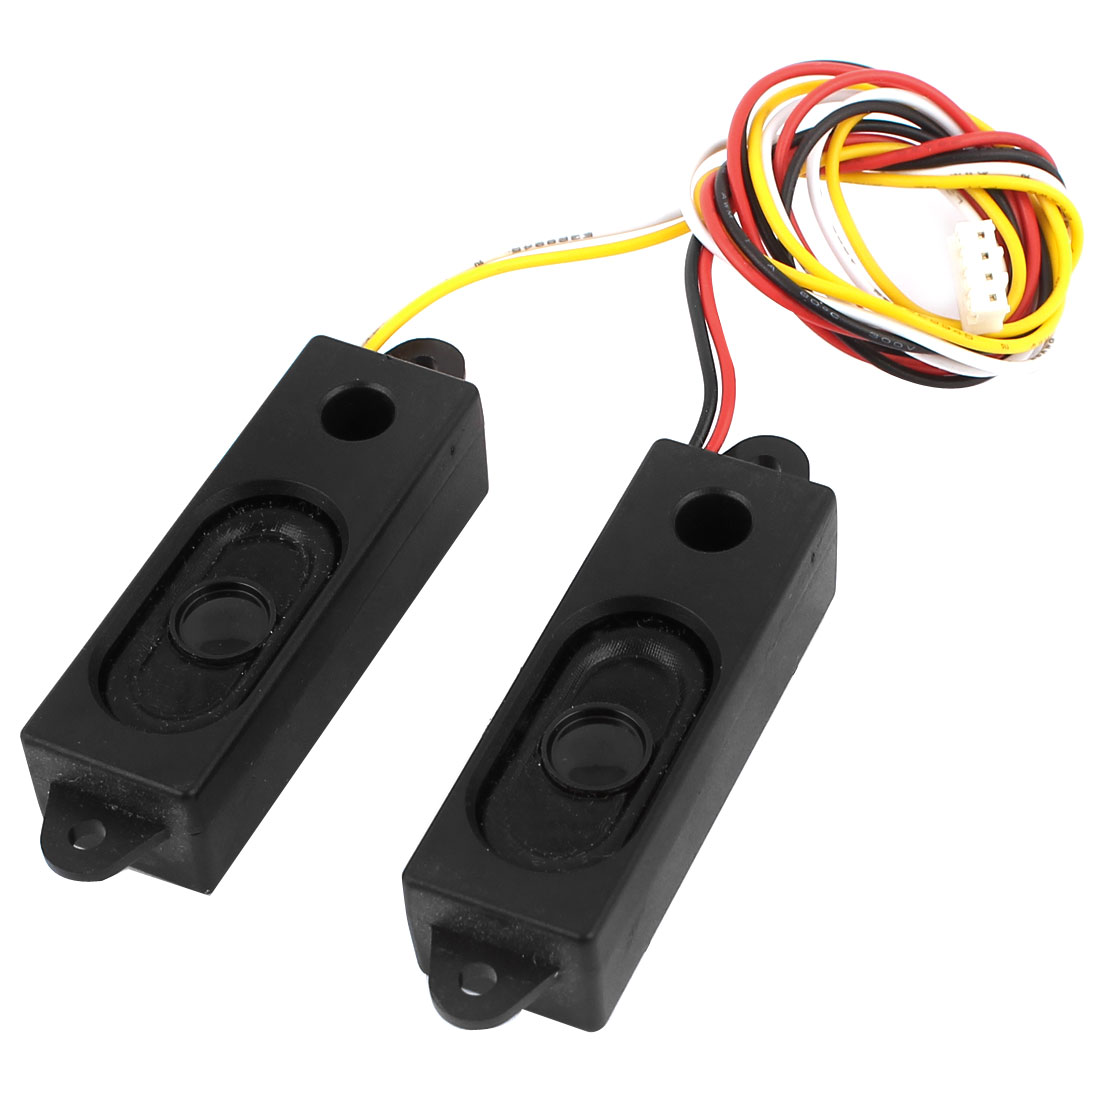 Pair Black Plastic Housing 2W 8 Ohm Wired Audio Speakers for Controller Board